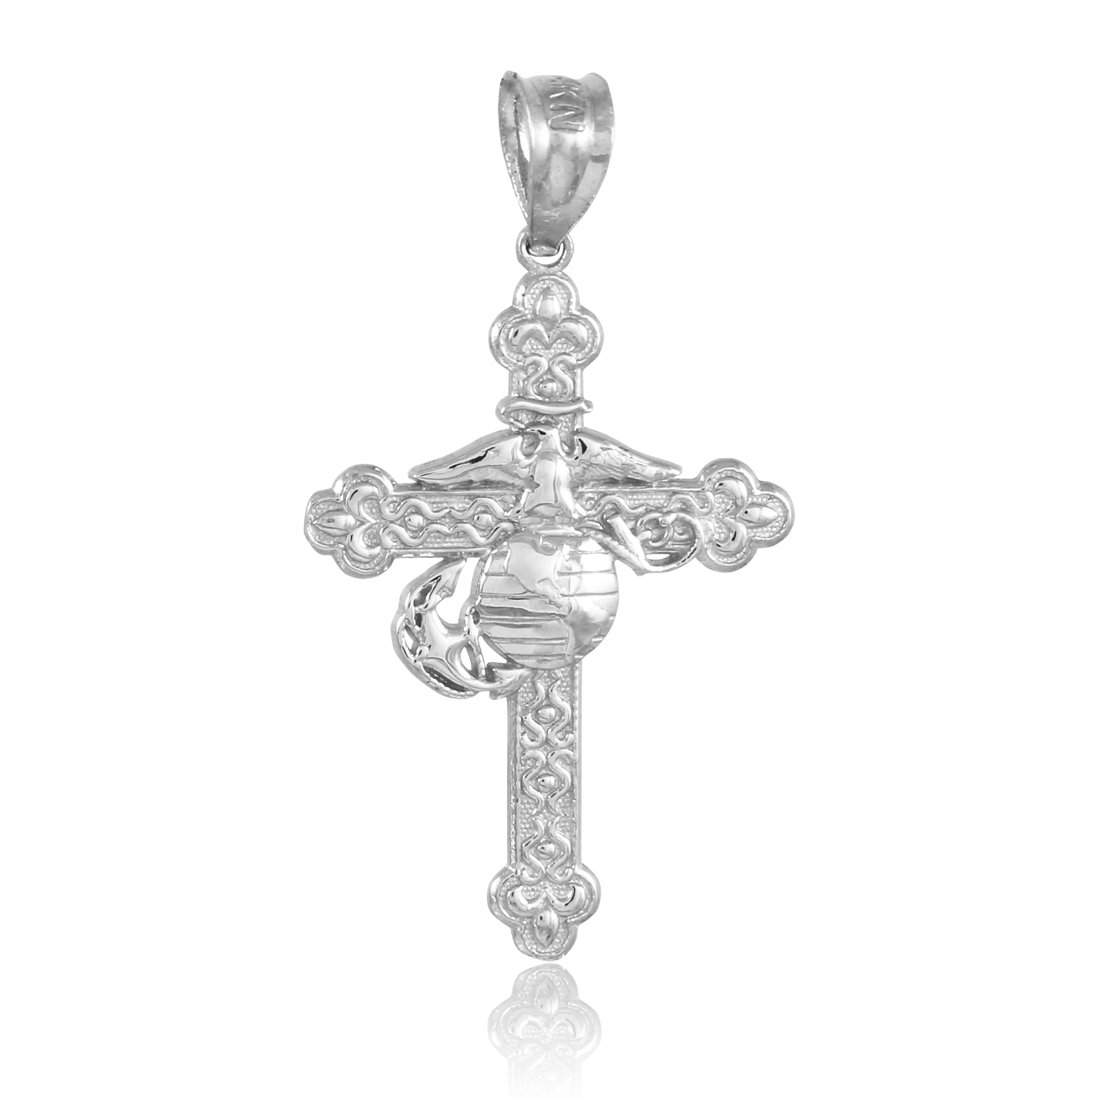 Silver US Marine Christian Cross Charm Pendant Necklace, ocean, boath, sea